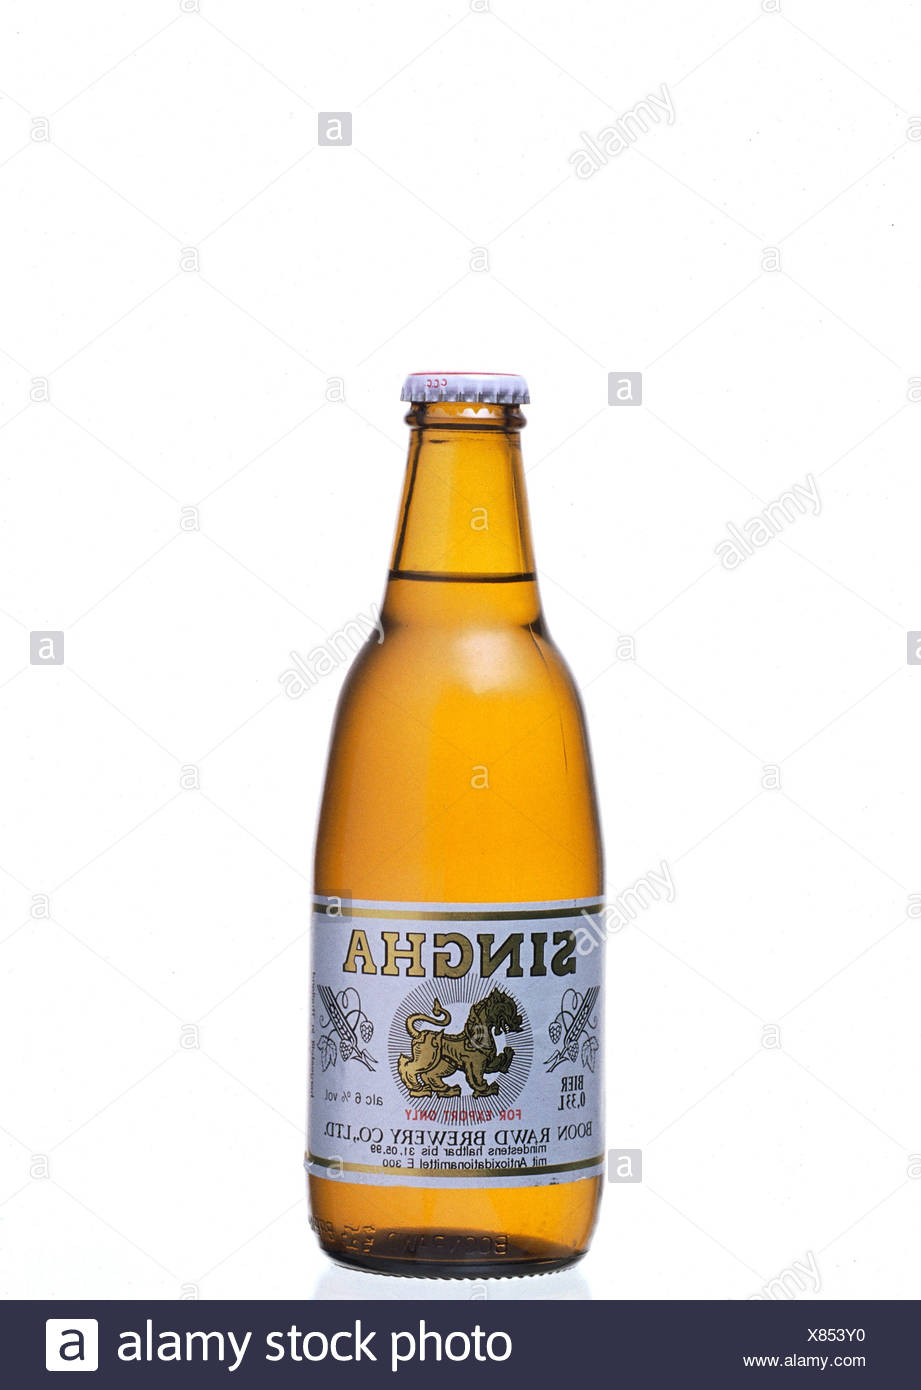 signha beer: boon rawd brewery essay Also read signha beer: boon rawd brewery essay sample there is a terrorist war aimed at destabilizing russia politically and economically.